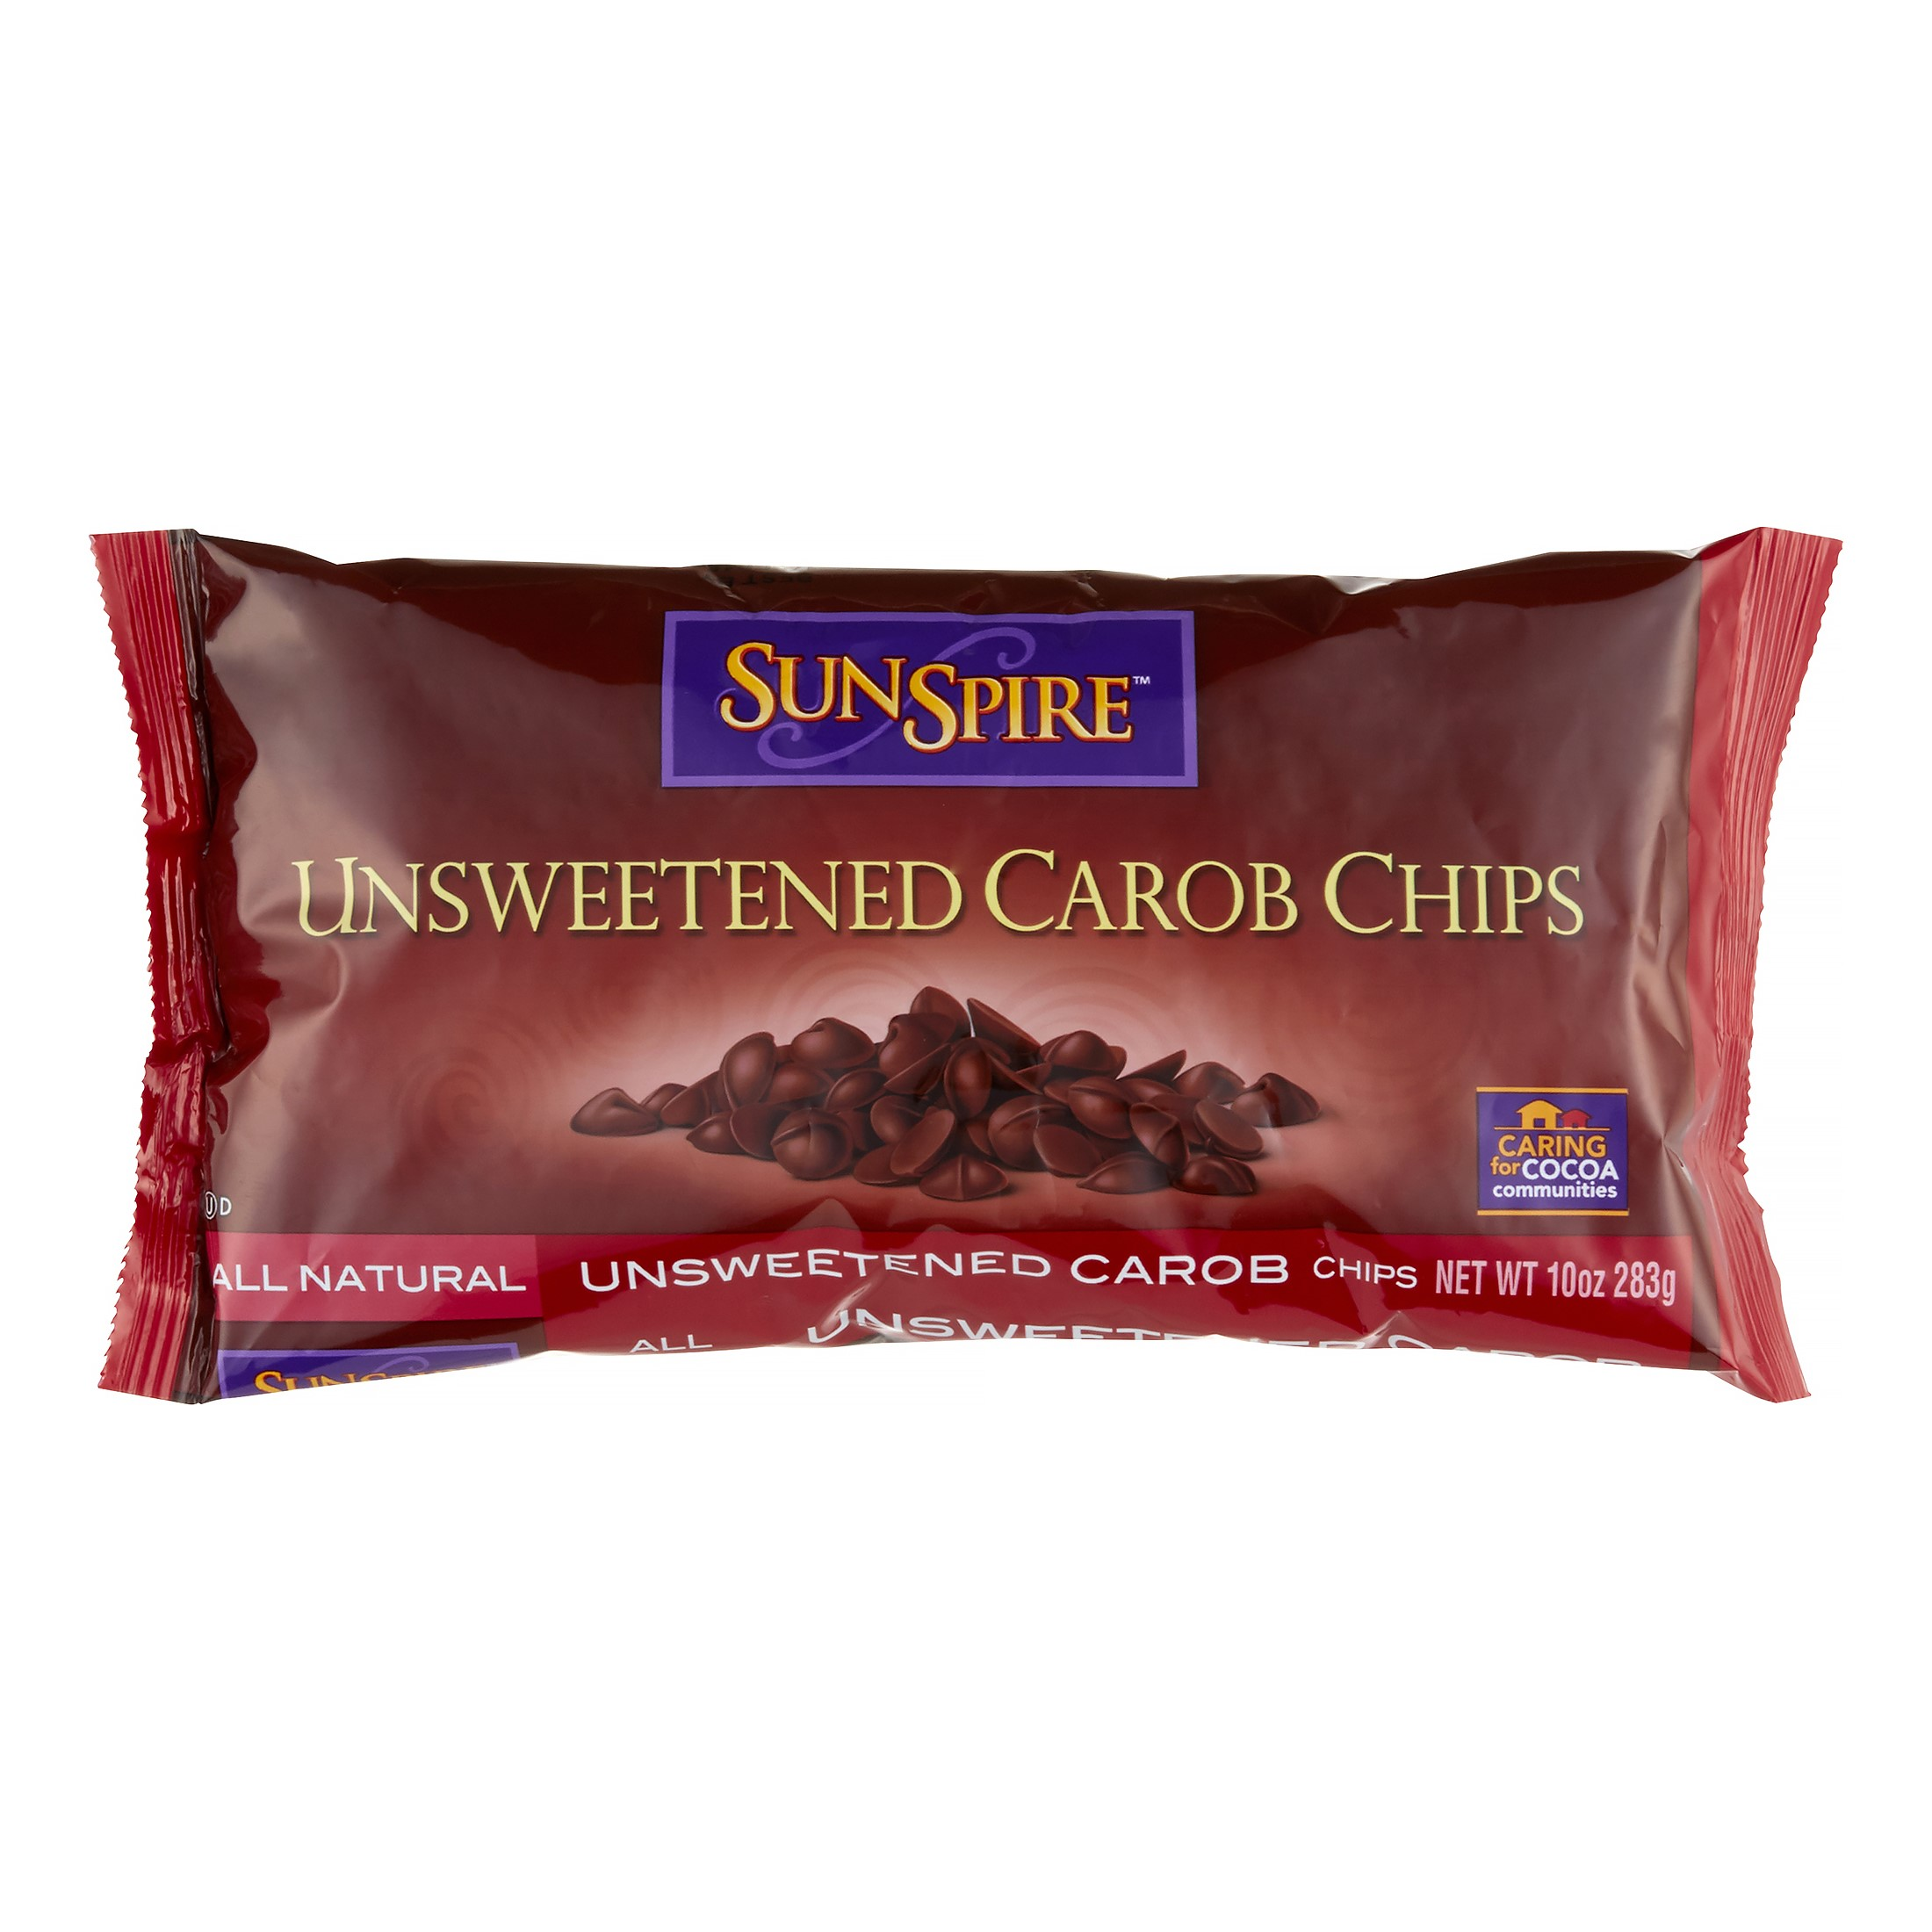 SunSpire Unsweetened Carob Baking Chips 10 oz by Hain Celestial